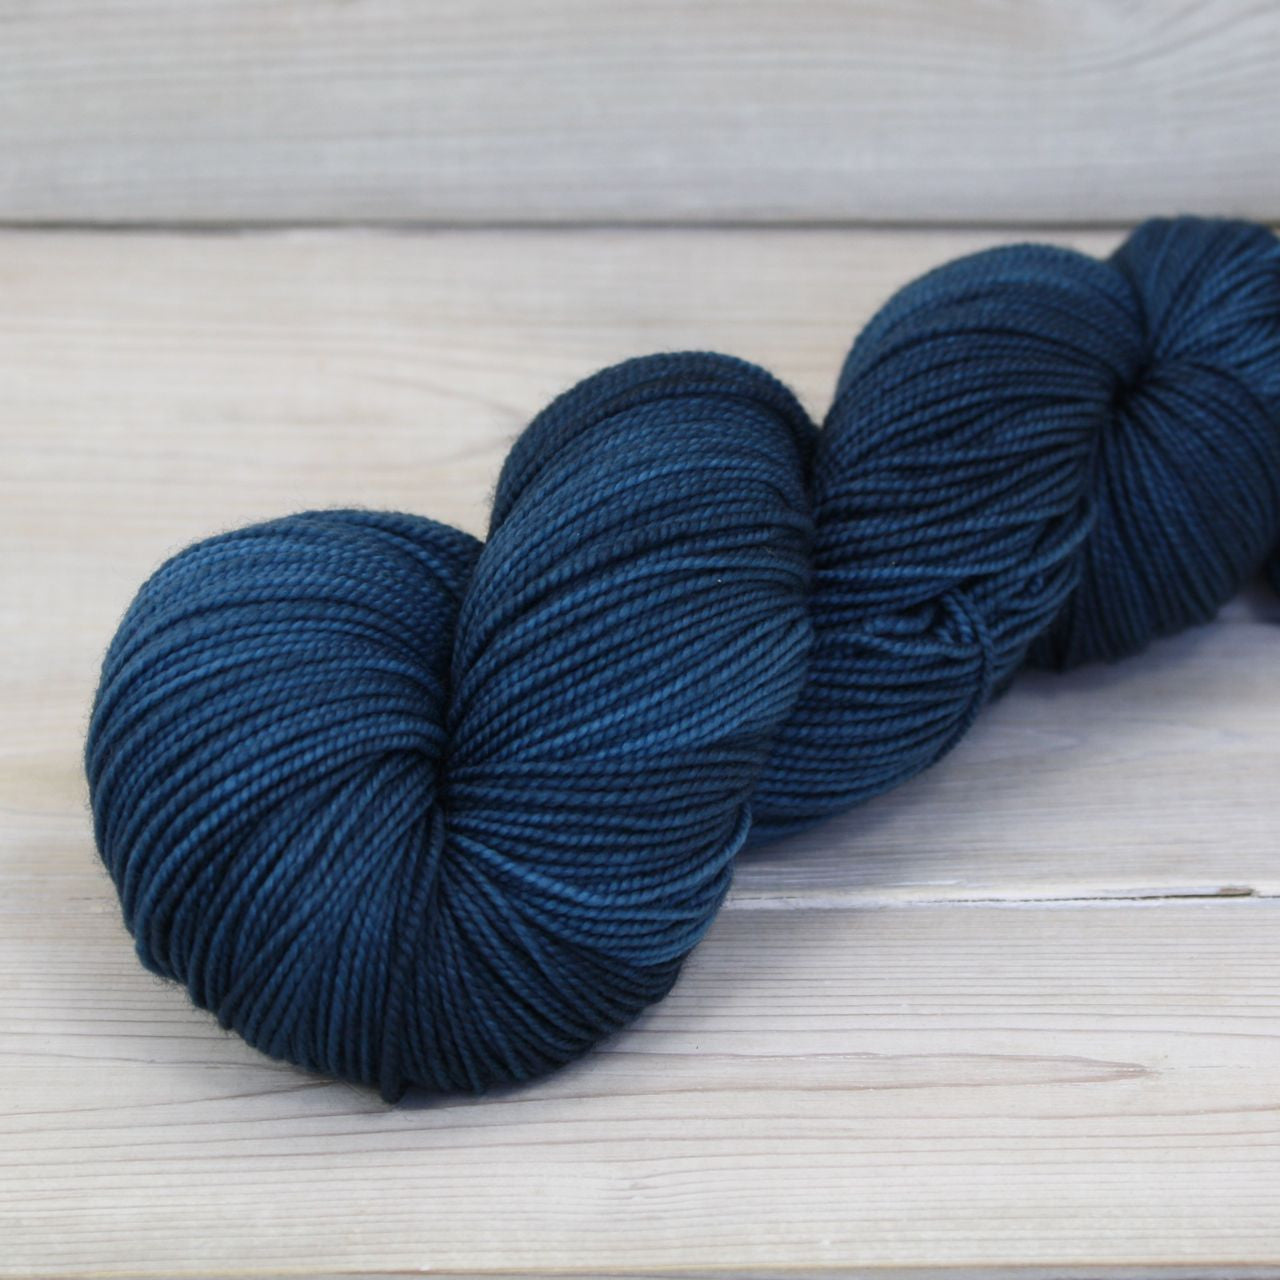 Celeste Yarn | Colorway: Marine